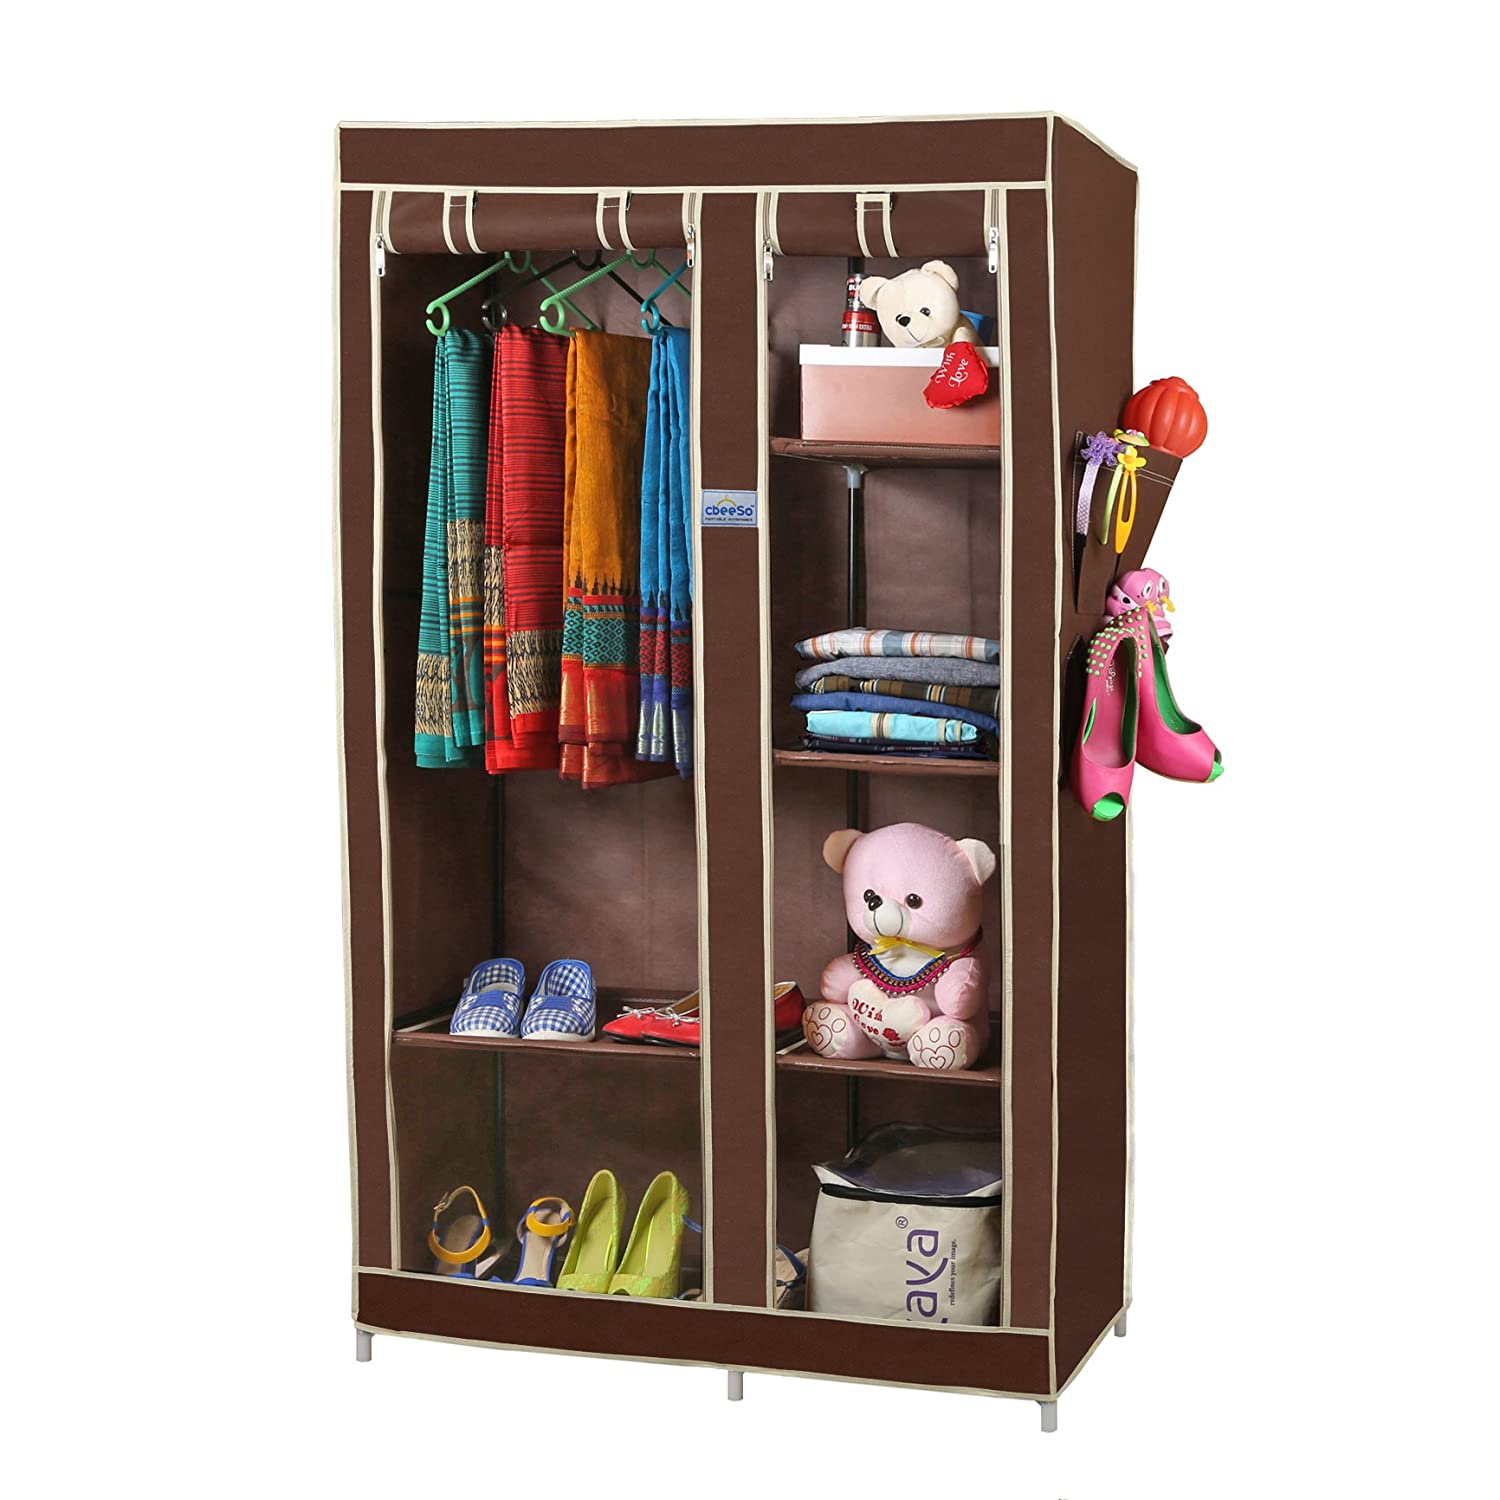 CbeeSo 6 Racks Portable Metal Wardrobe Closet CB260 BR EXTRA OFF